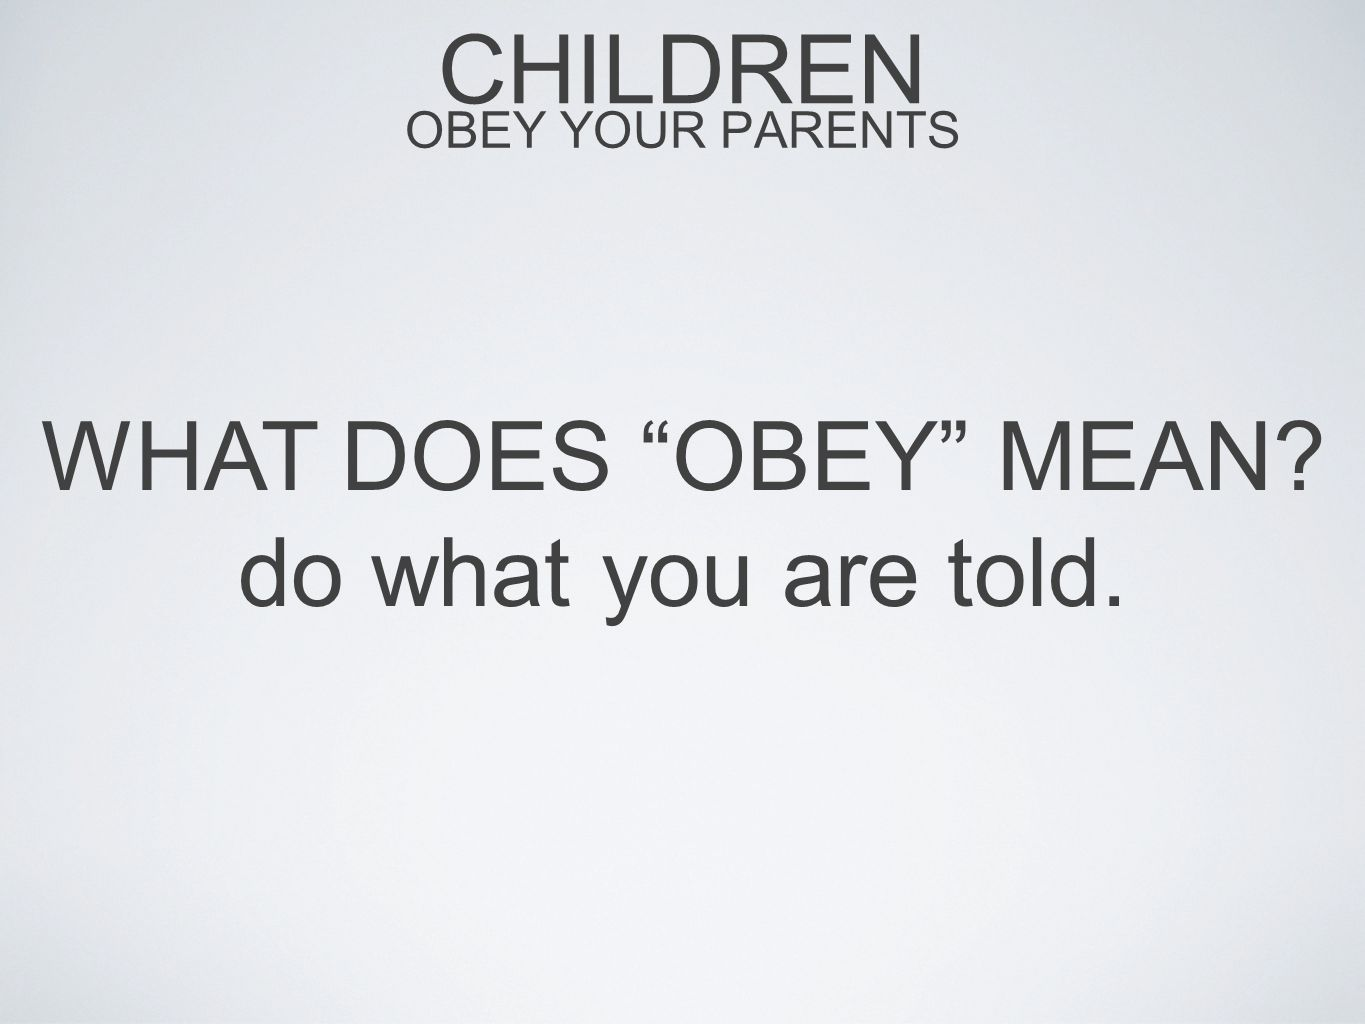 CHILDREN OBEY YOUR PARENTS WHAT DOES OBEY MEAN? do what you are told.